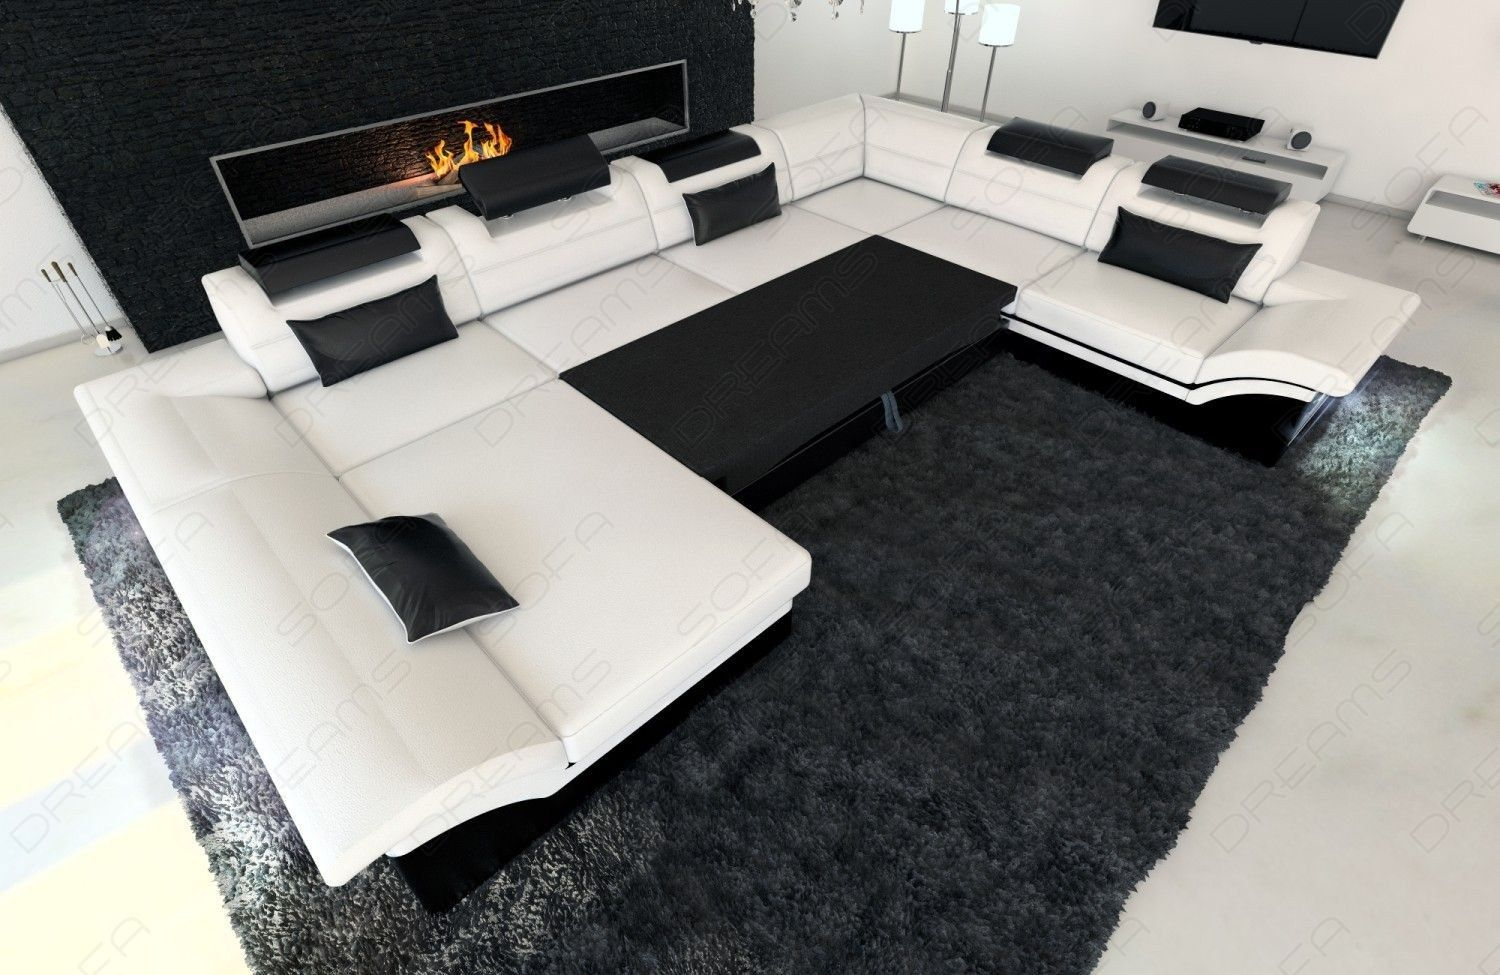 Fabric Design Sofa Atlanta Xl With Led Sofa Design Luxury Sofa Modern Fabric Sofa